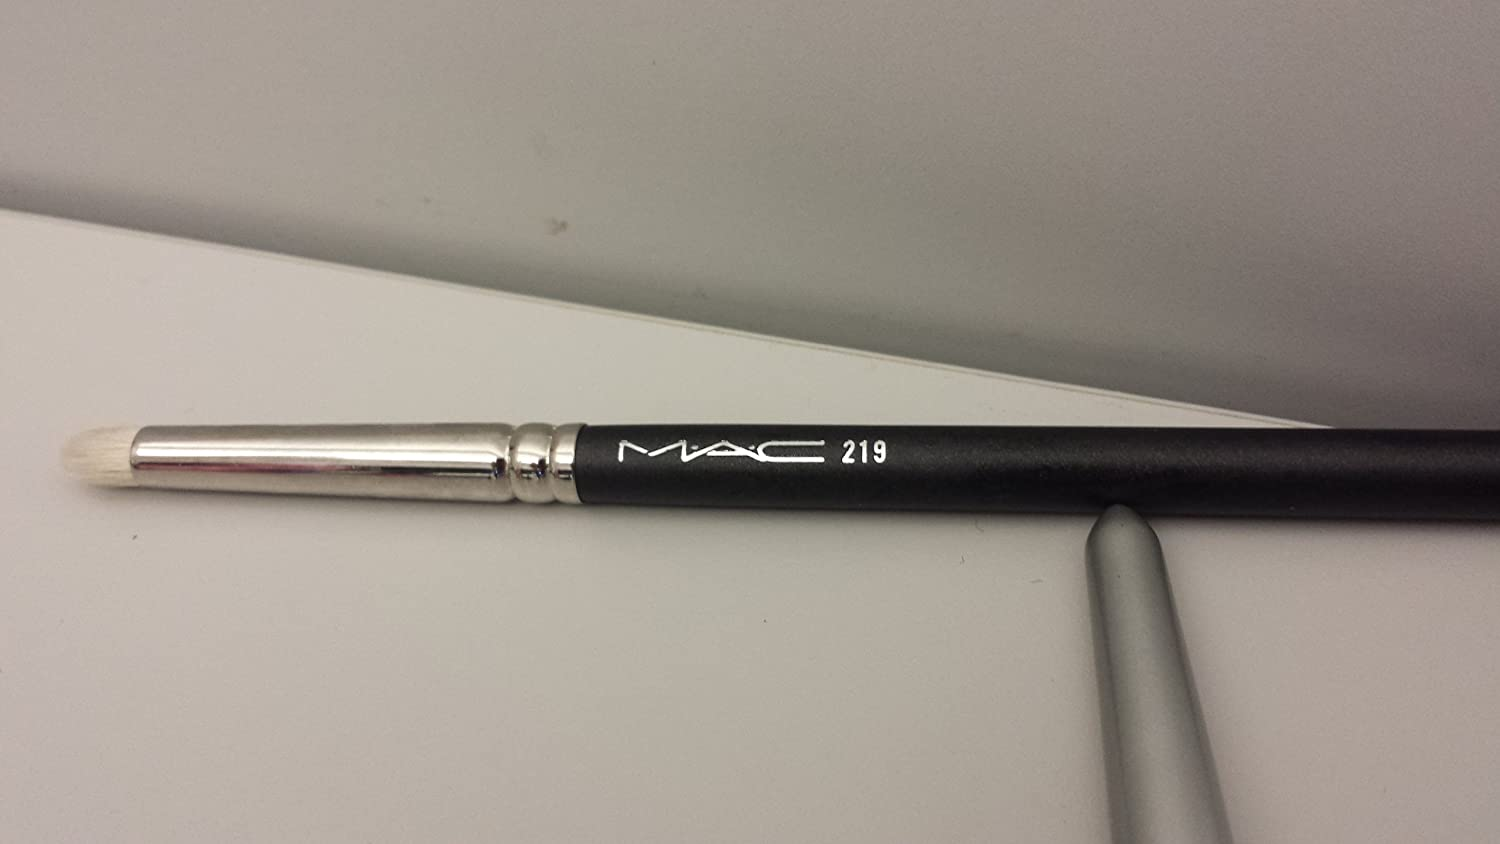 Mac #219 Eye Pencil Brush by M.A.C: Amazon.es: Belleza